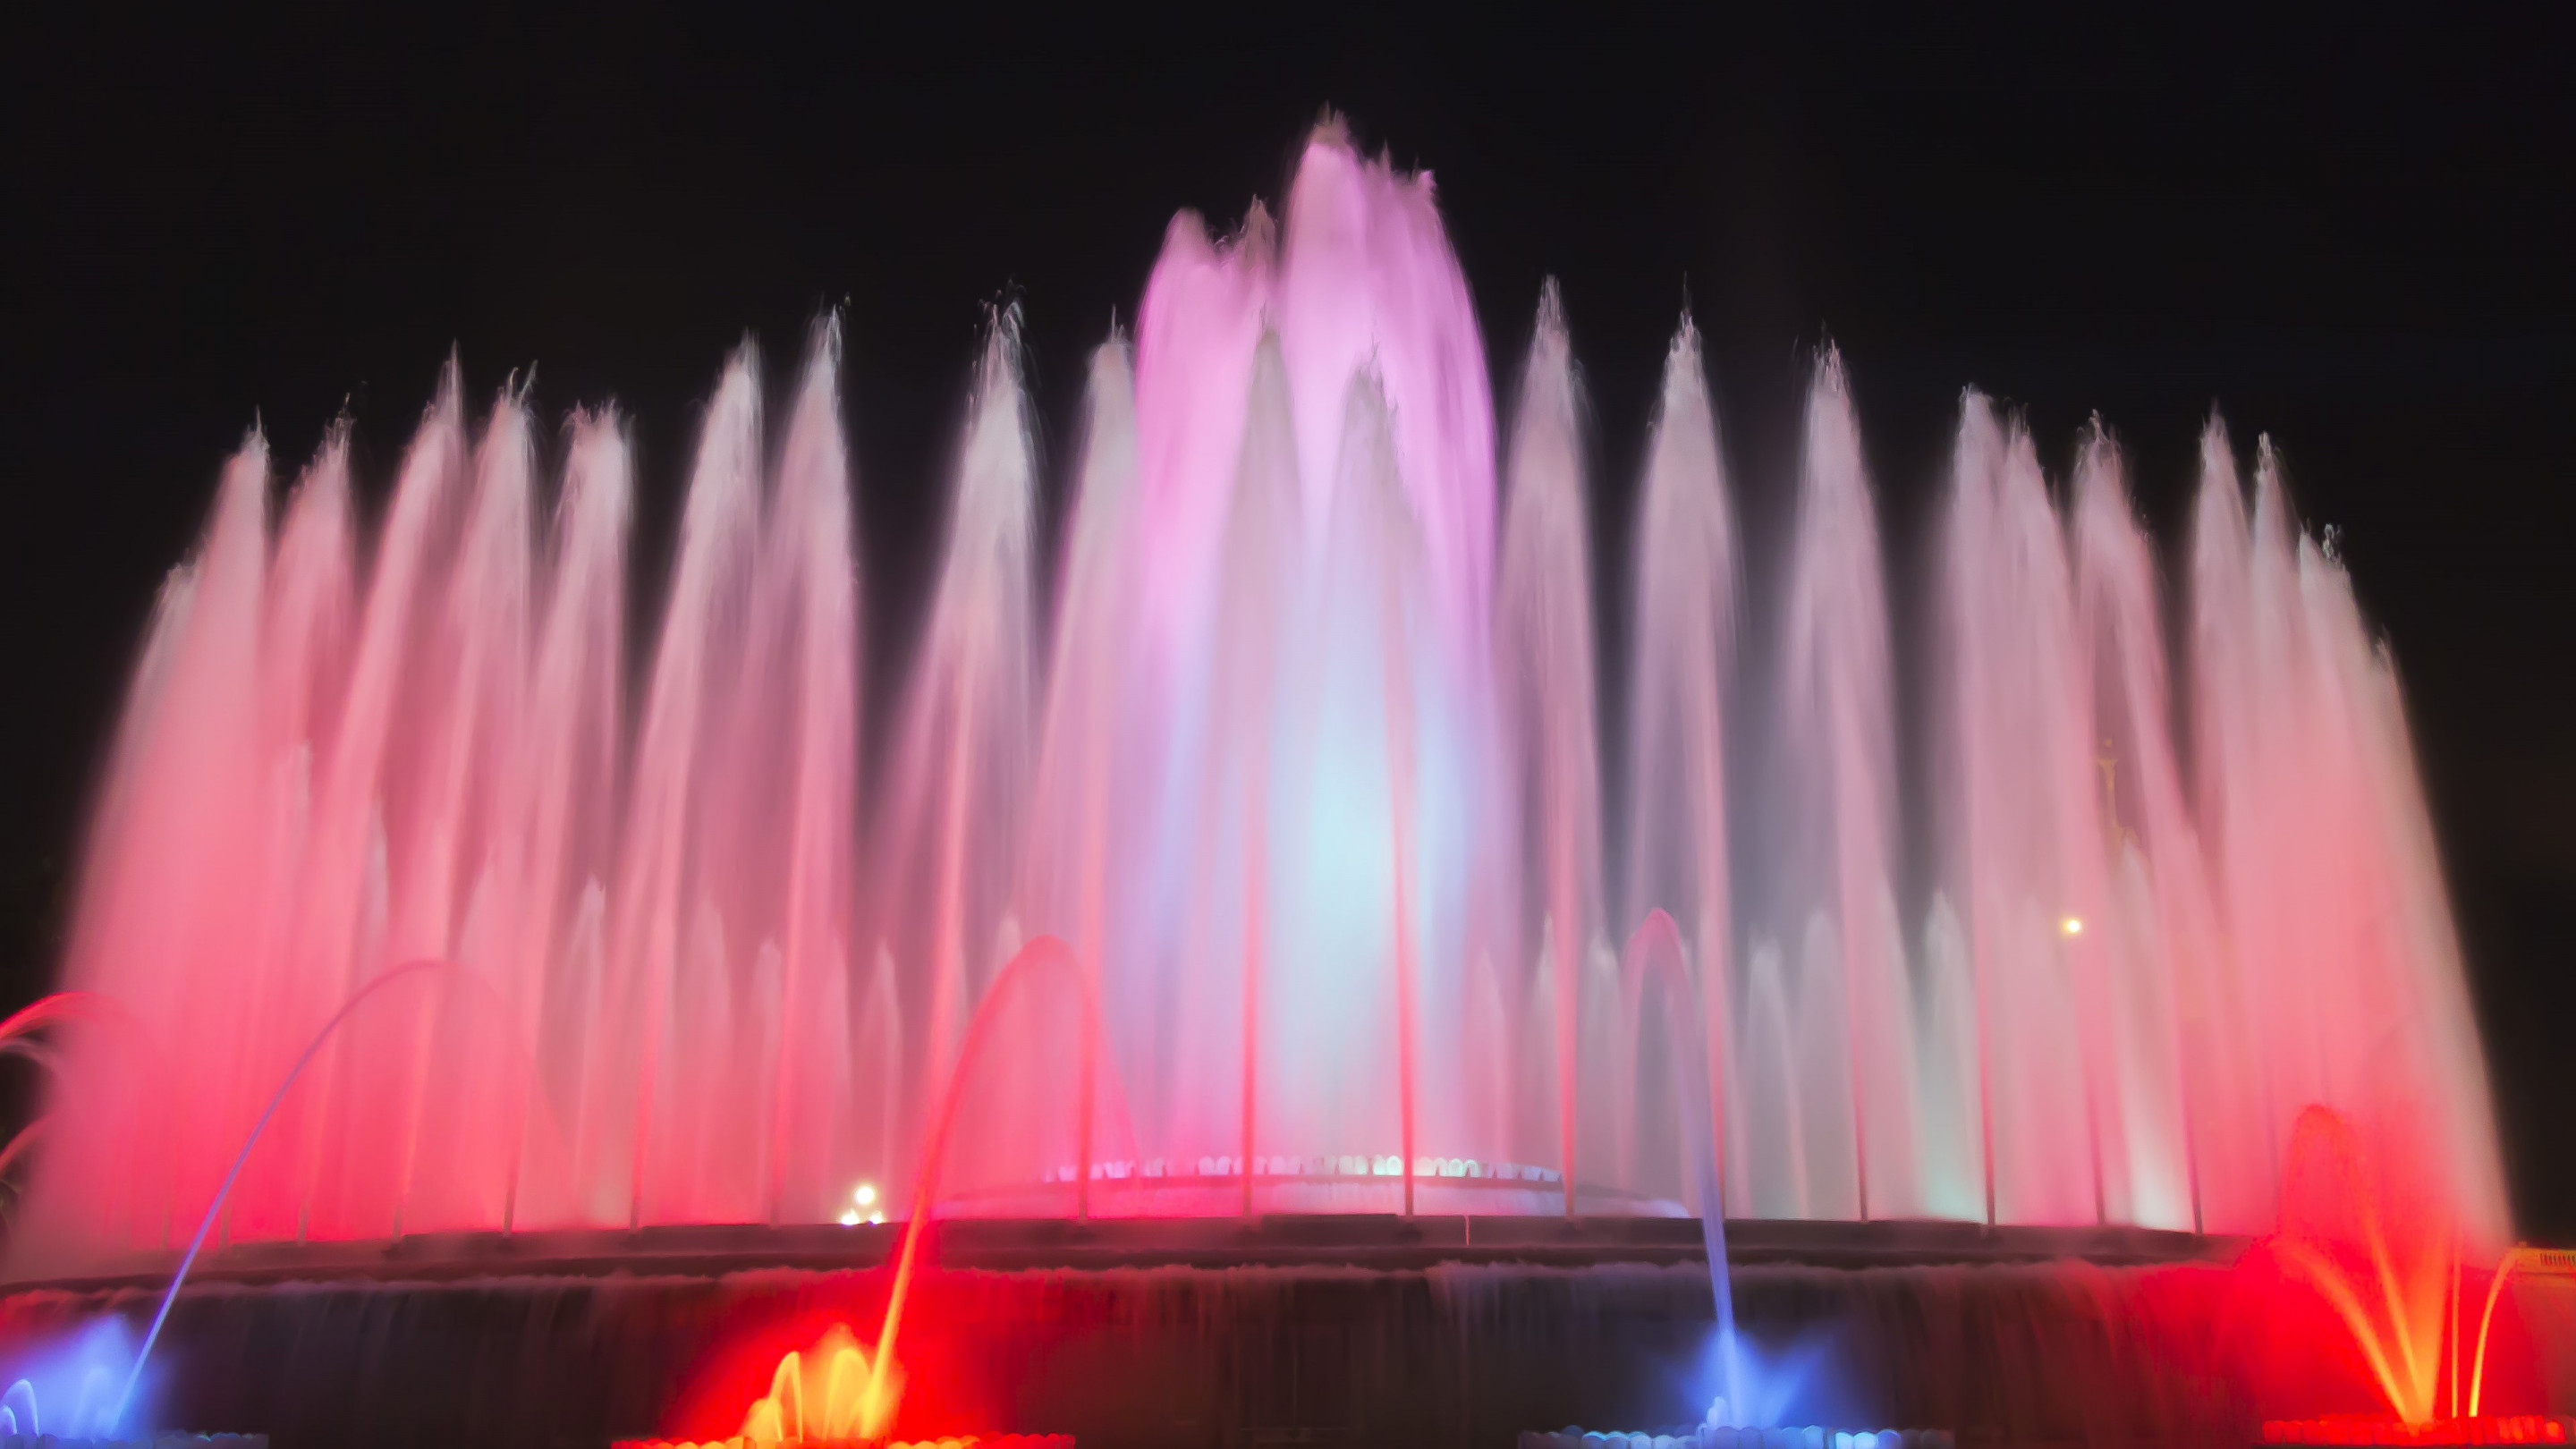 Fountains in Barcelona | 2880x1620 wallpaper